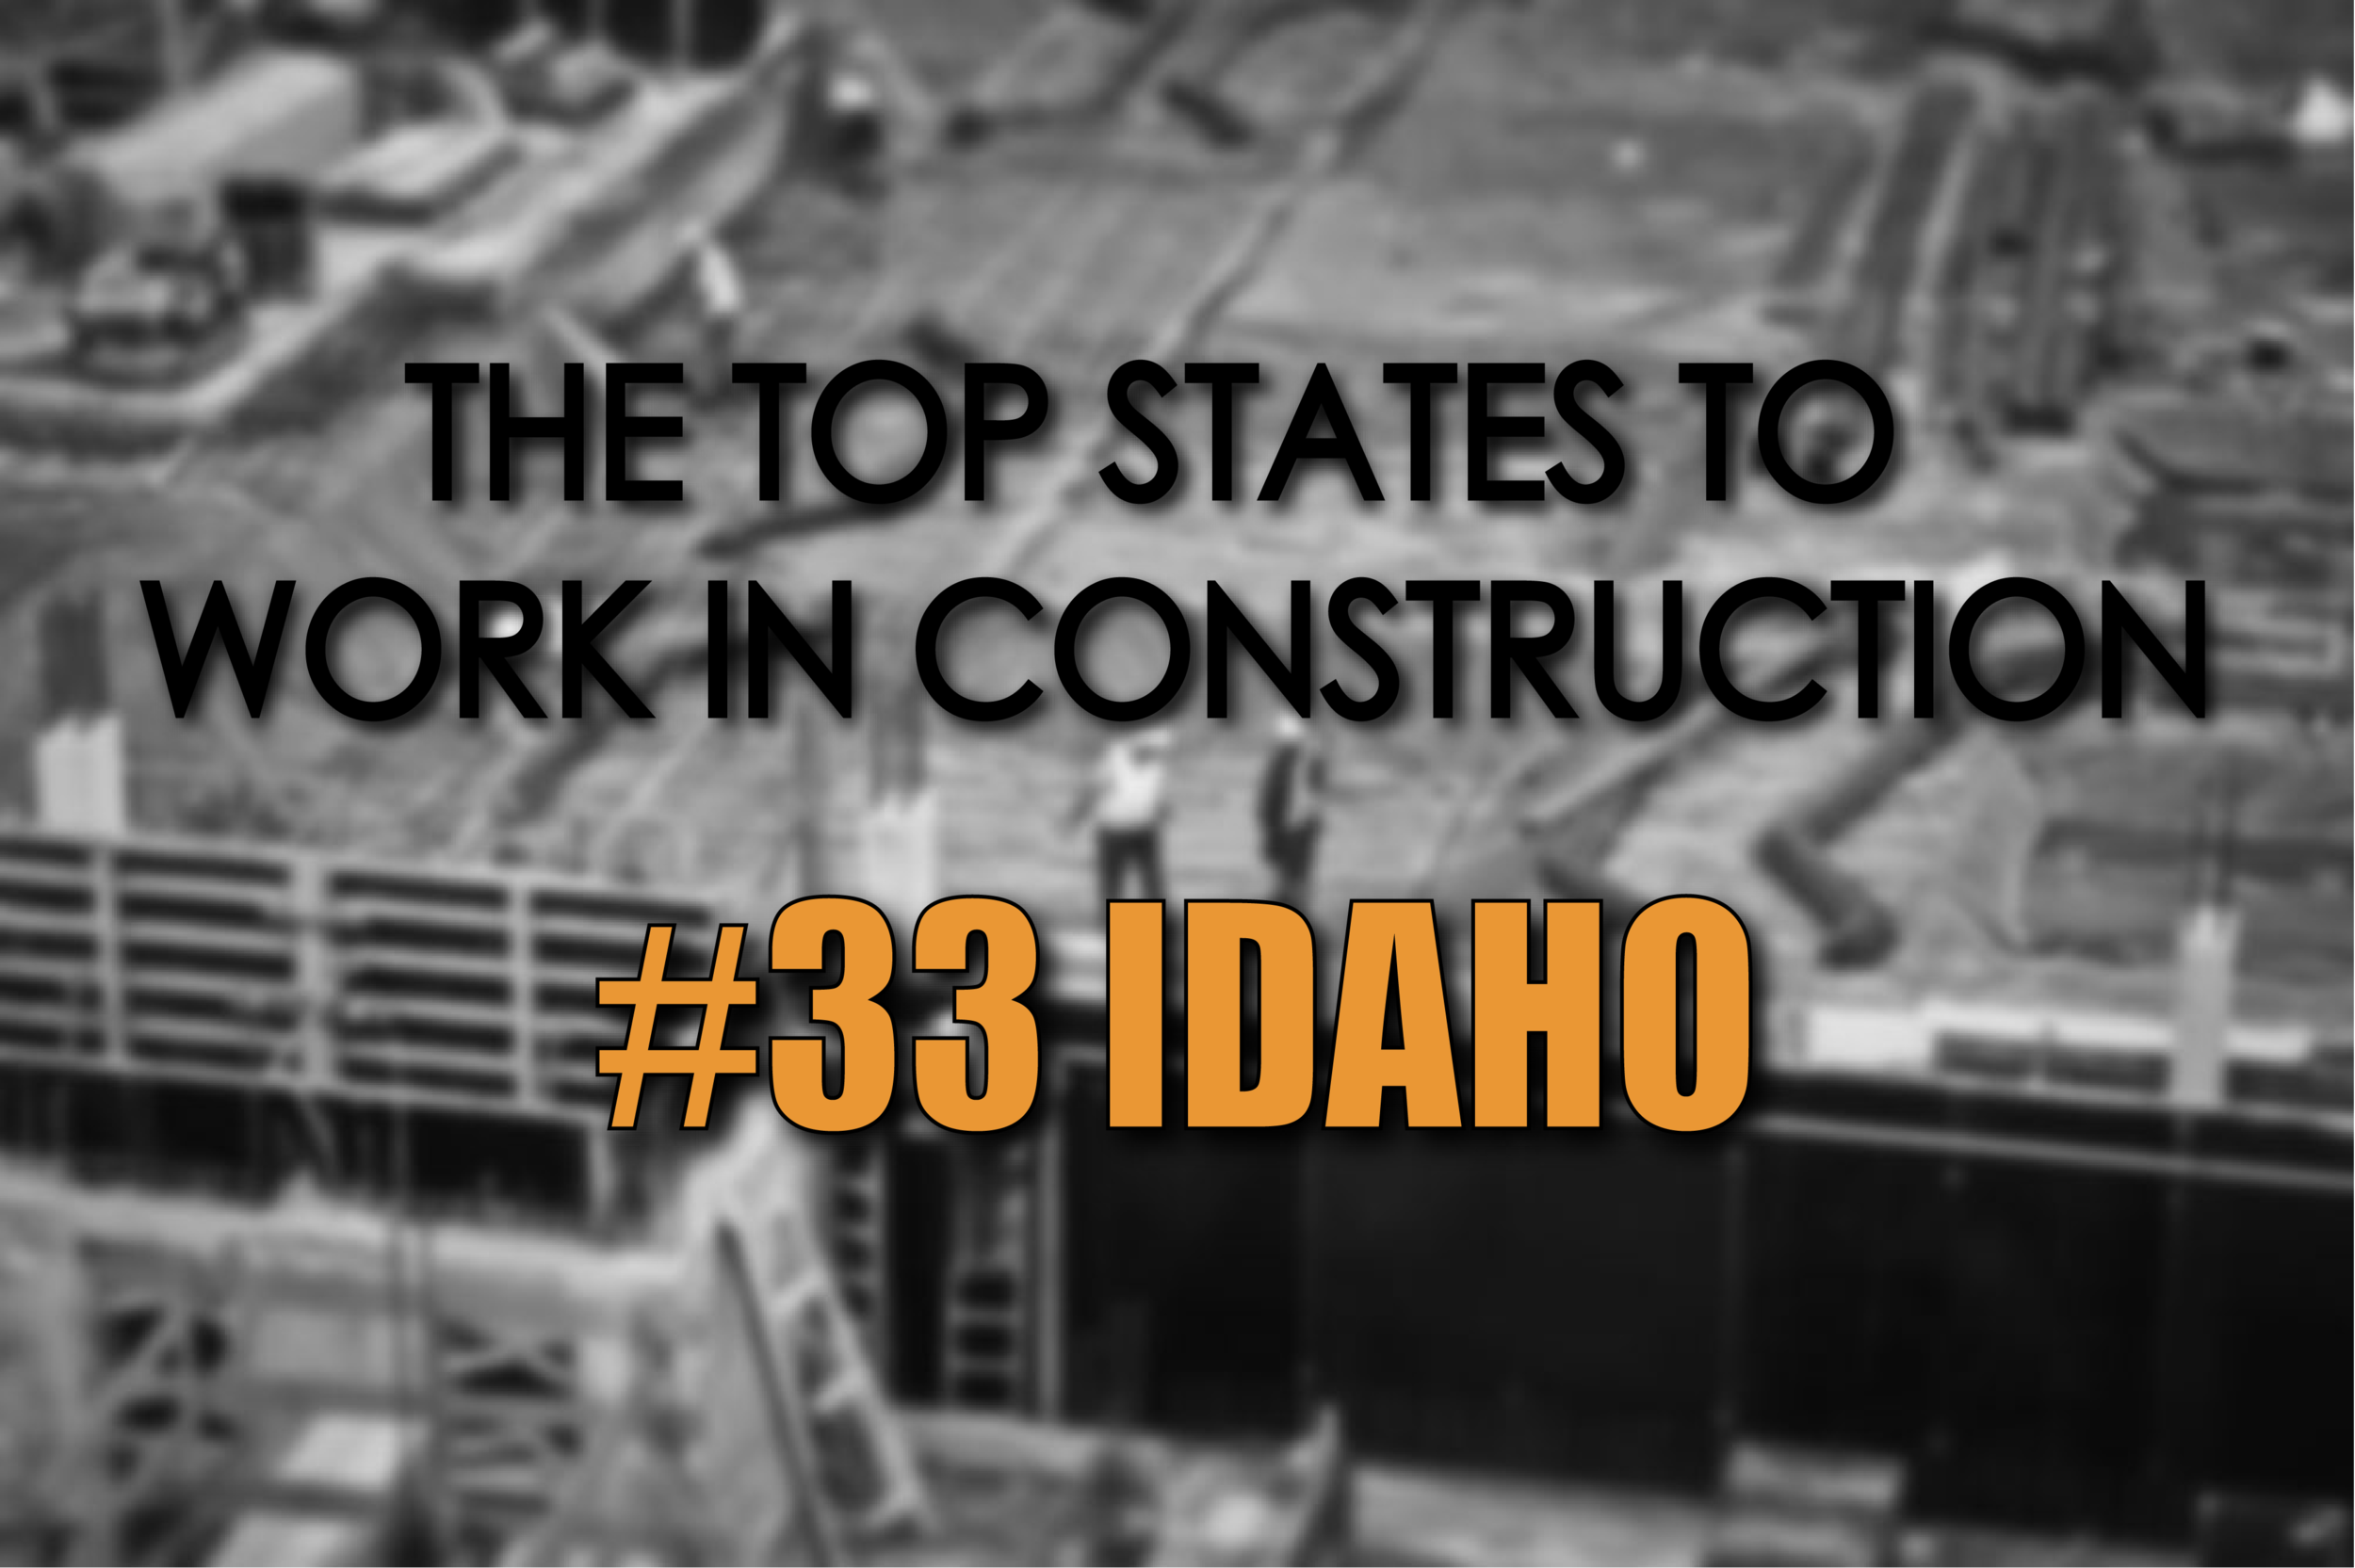 Idaho best states to work in construction